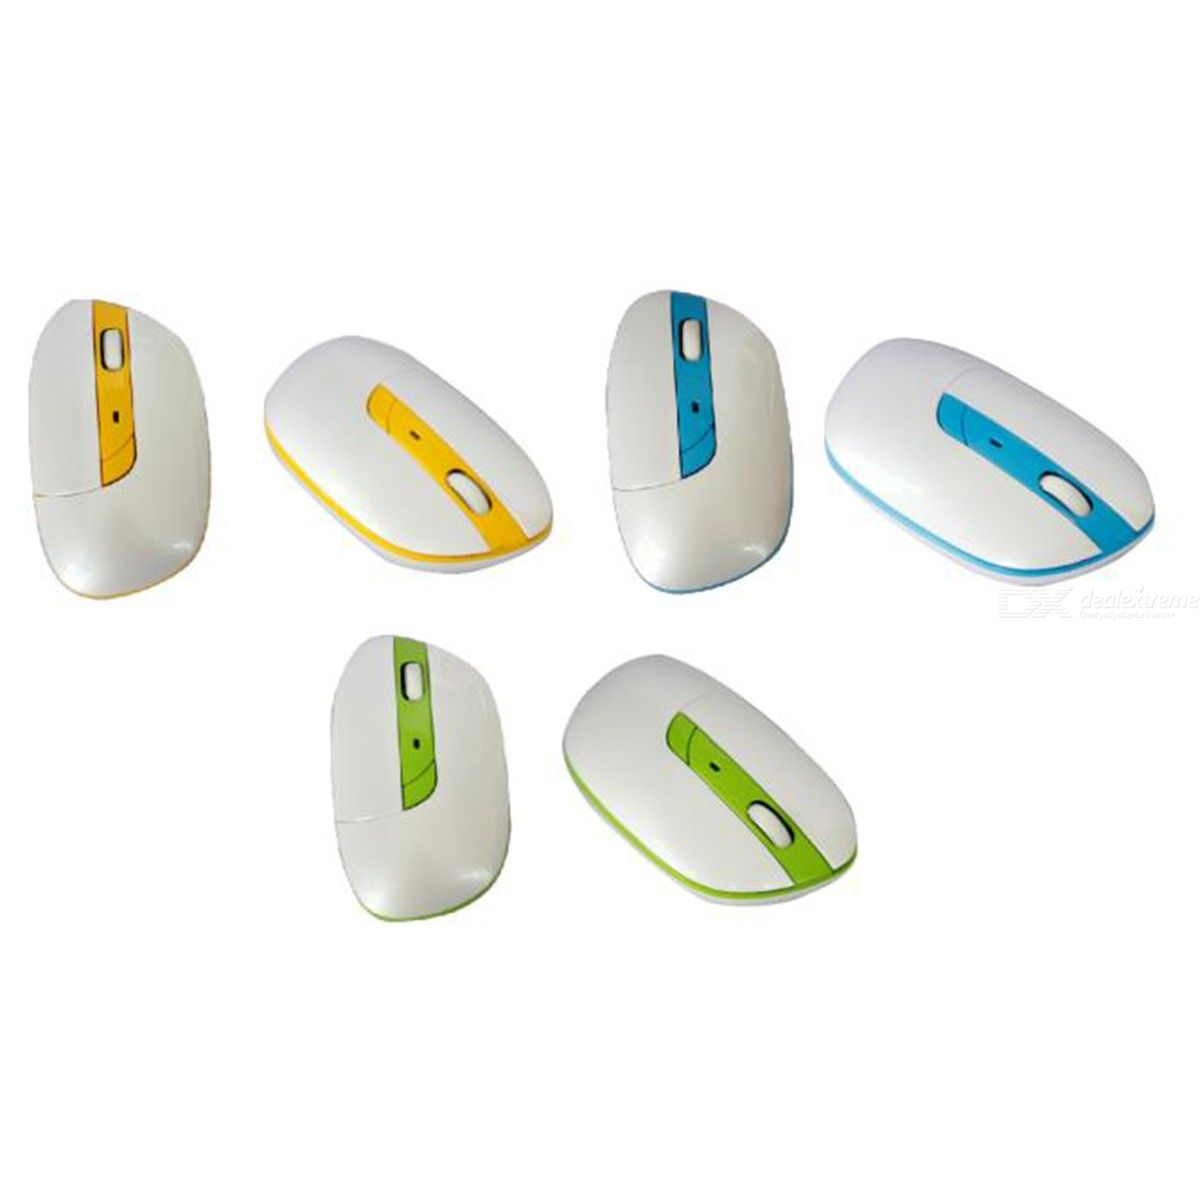 Kids Mini Wireless Mouse, Irregular Bluetooth Mice For PC Laptop